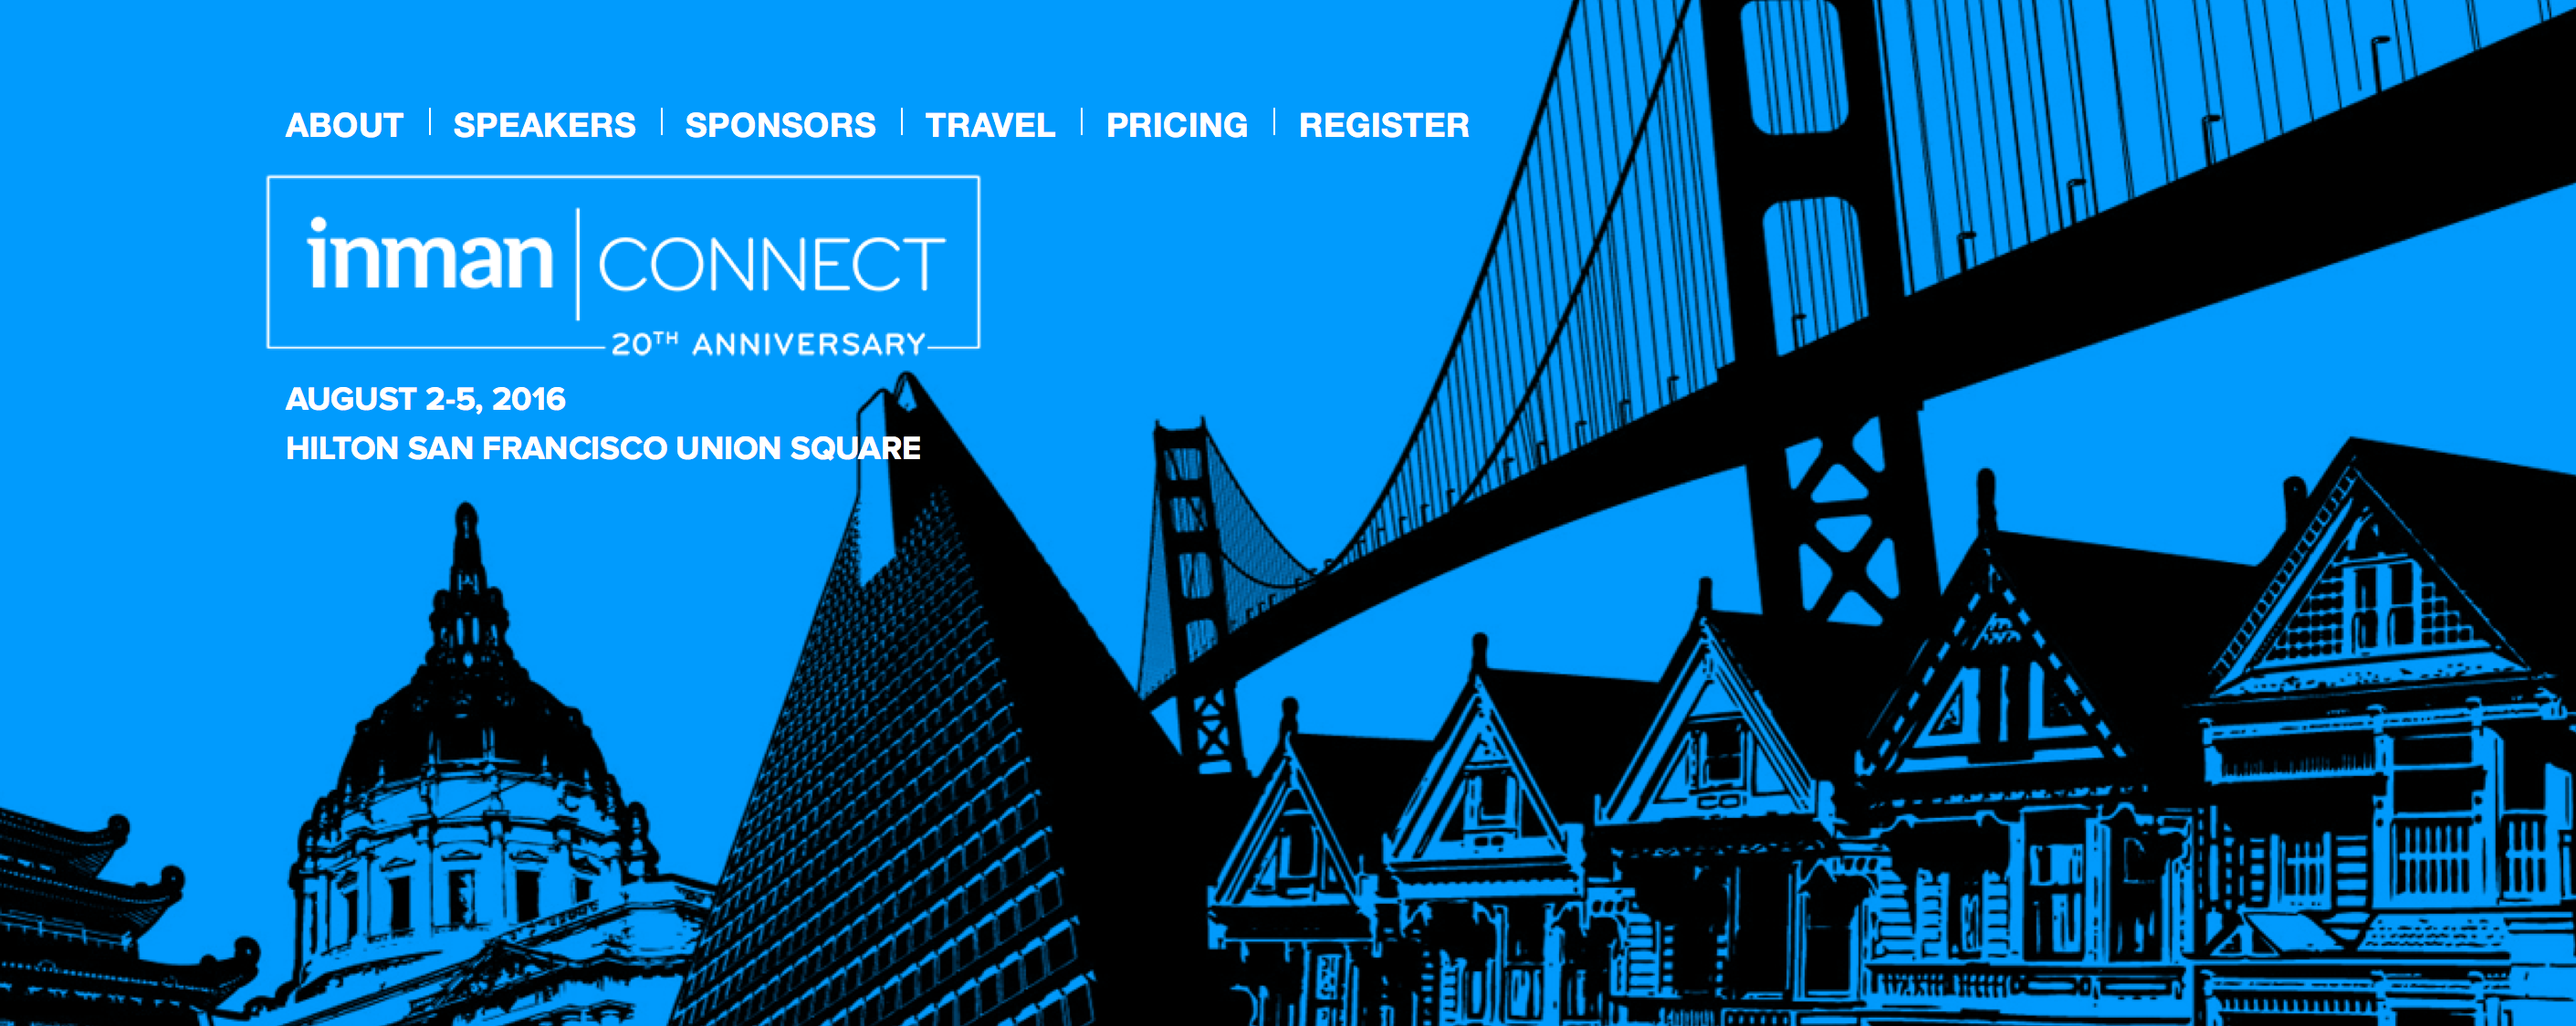 Click here to learn more about Inman Connect events